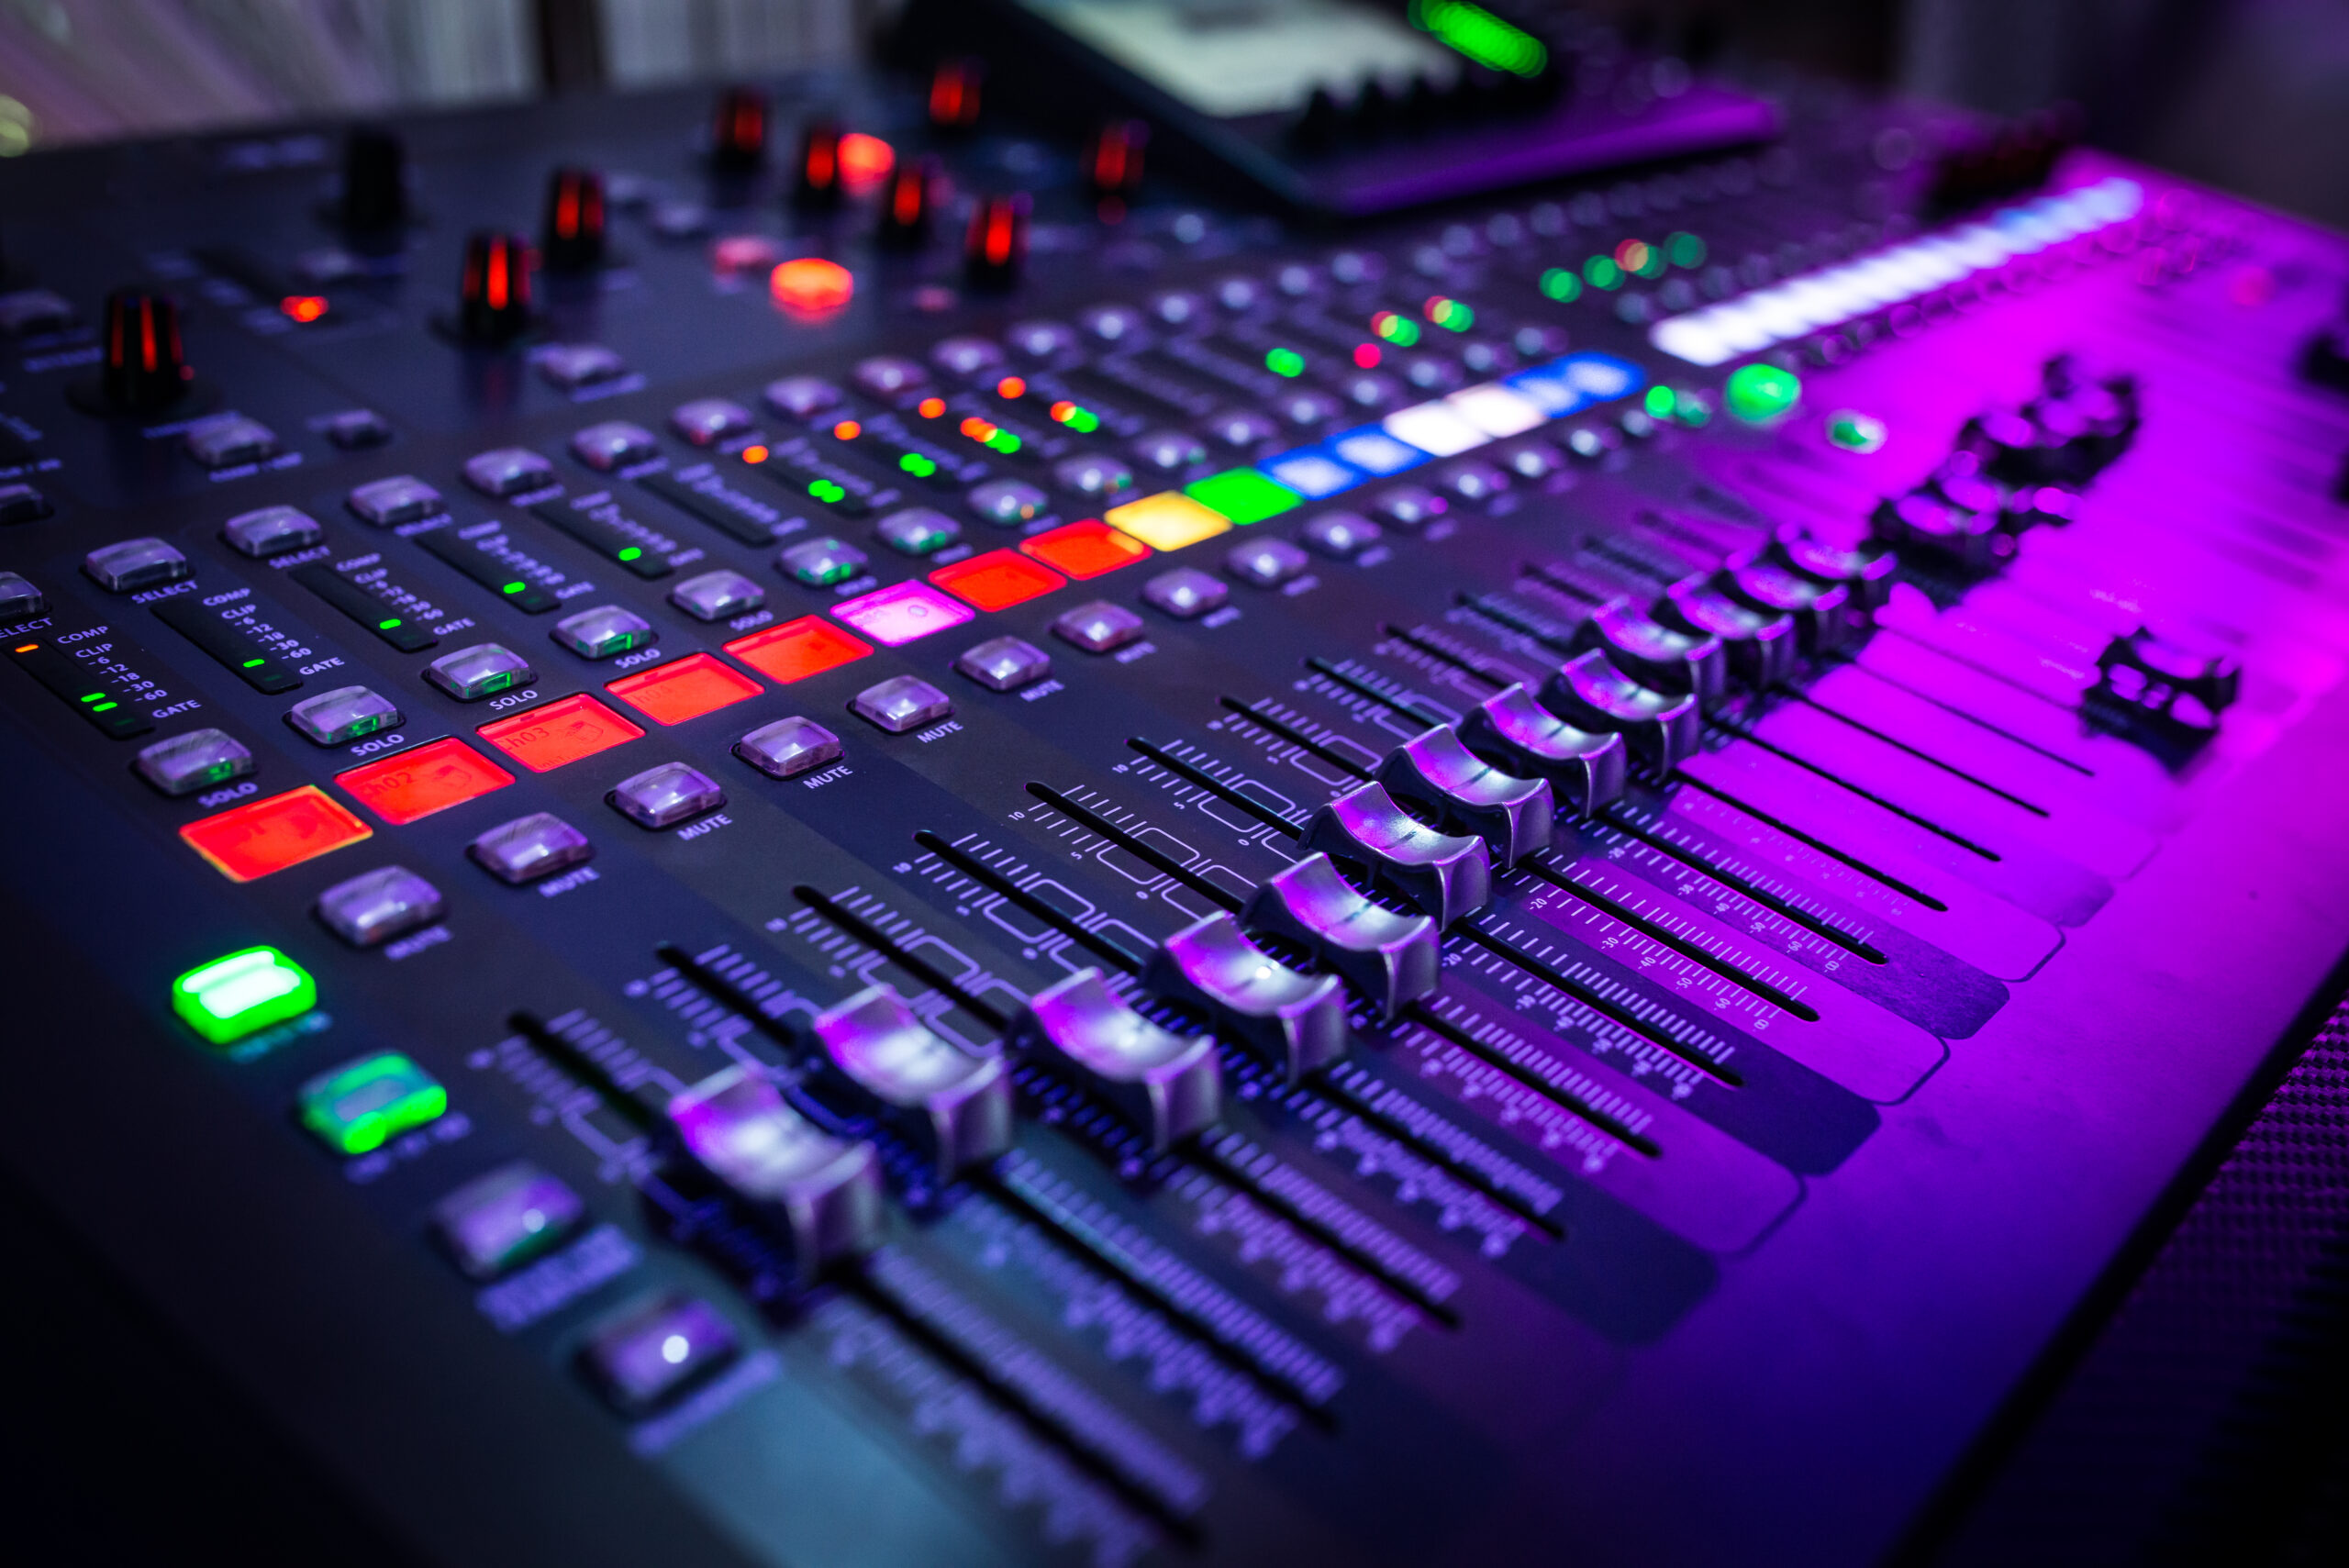 Creative ways for event planners to utilize AV Tech